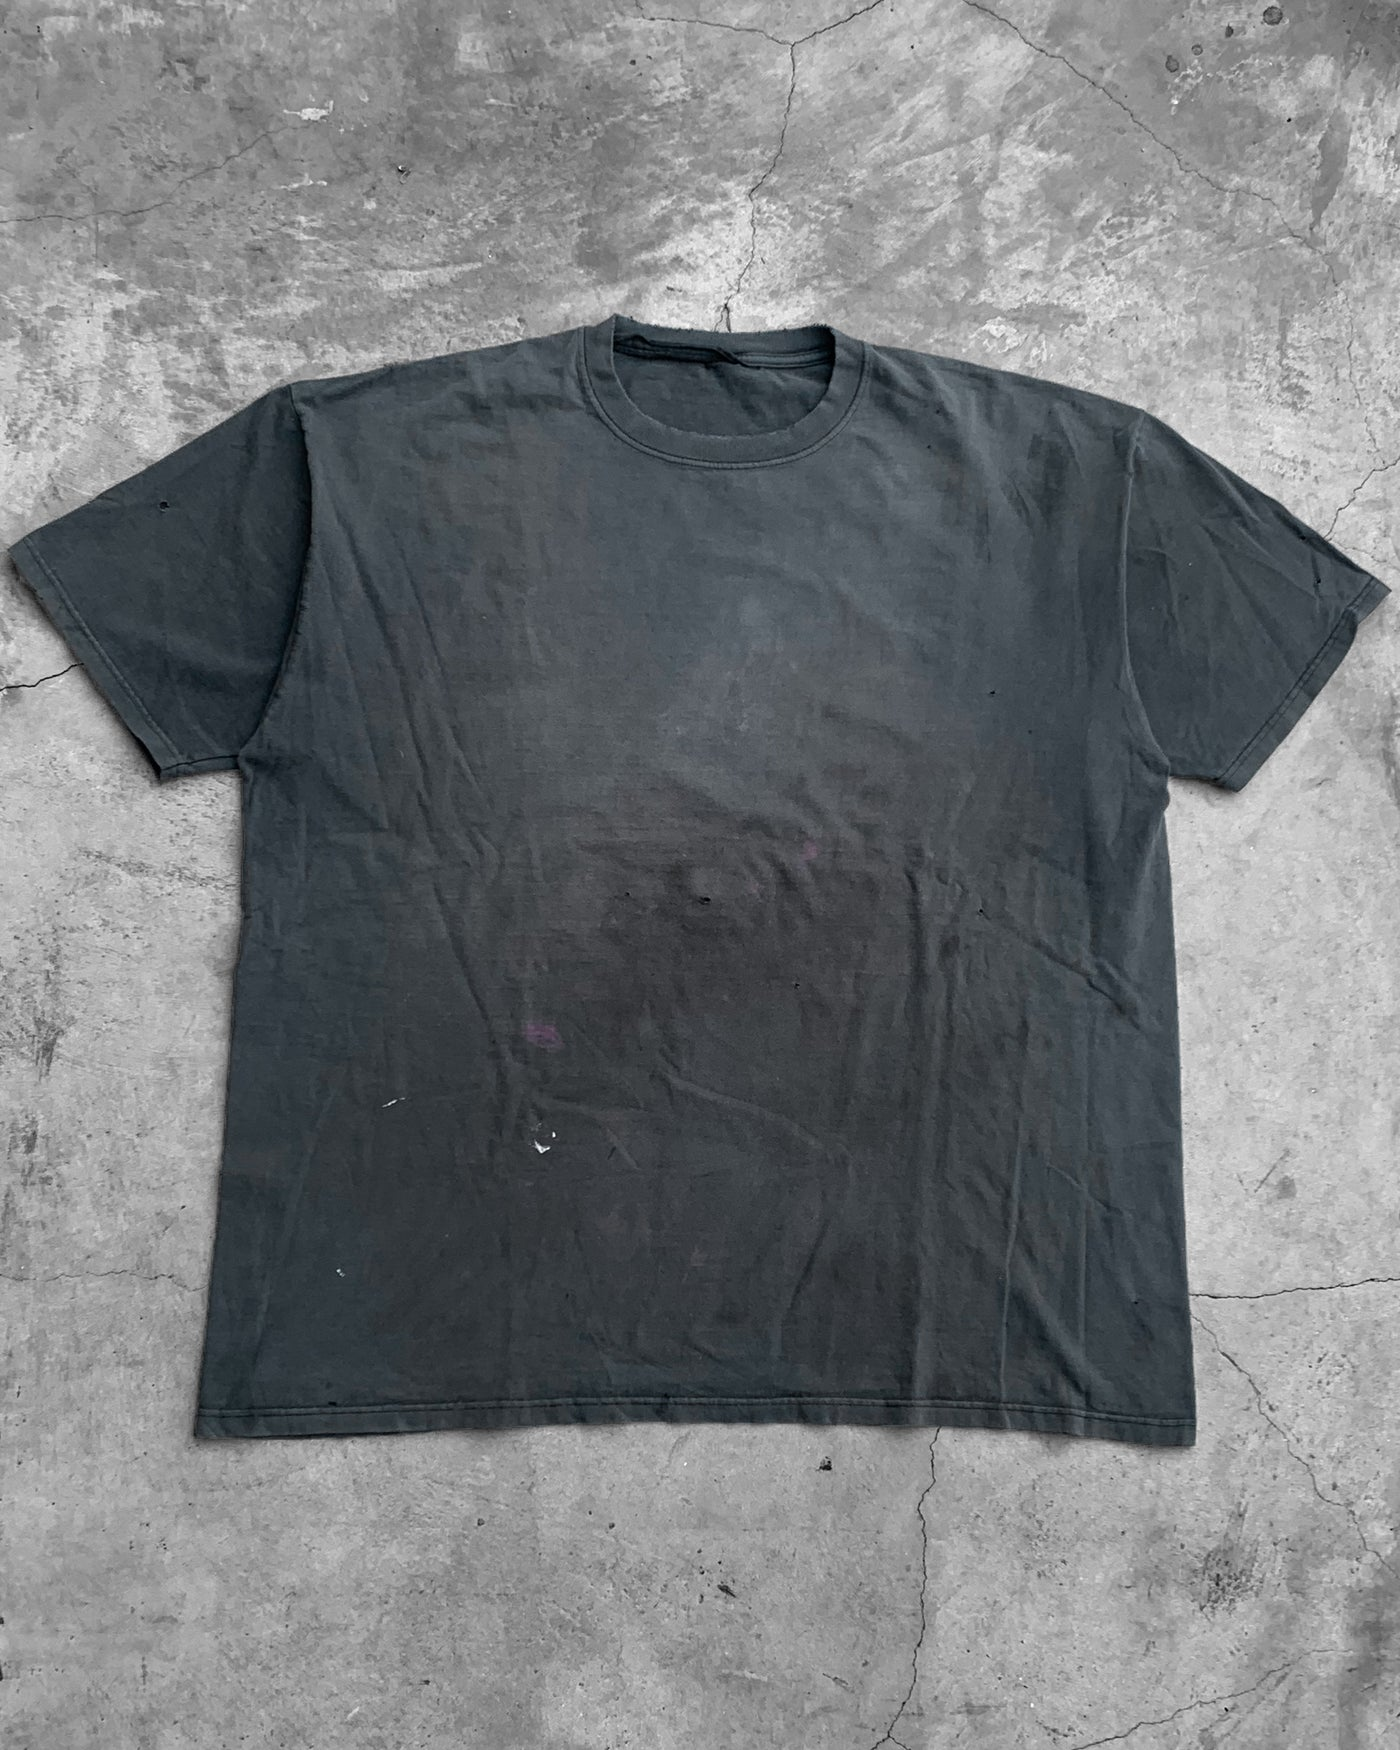 Distressed Faded Black Stained Blank Tee